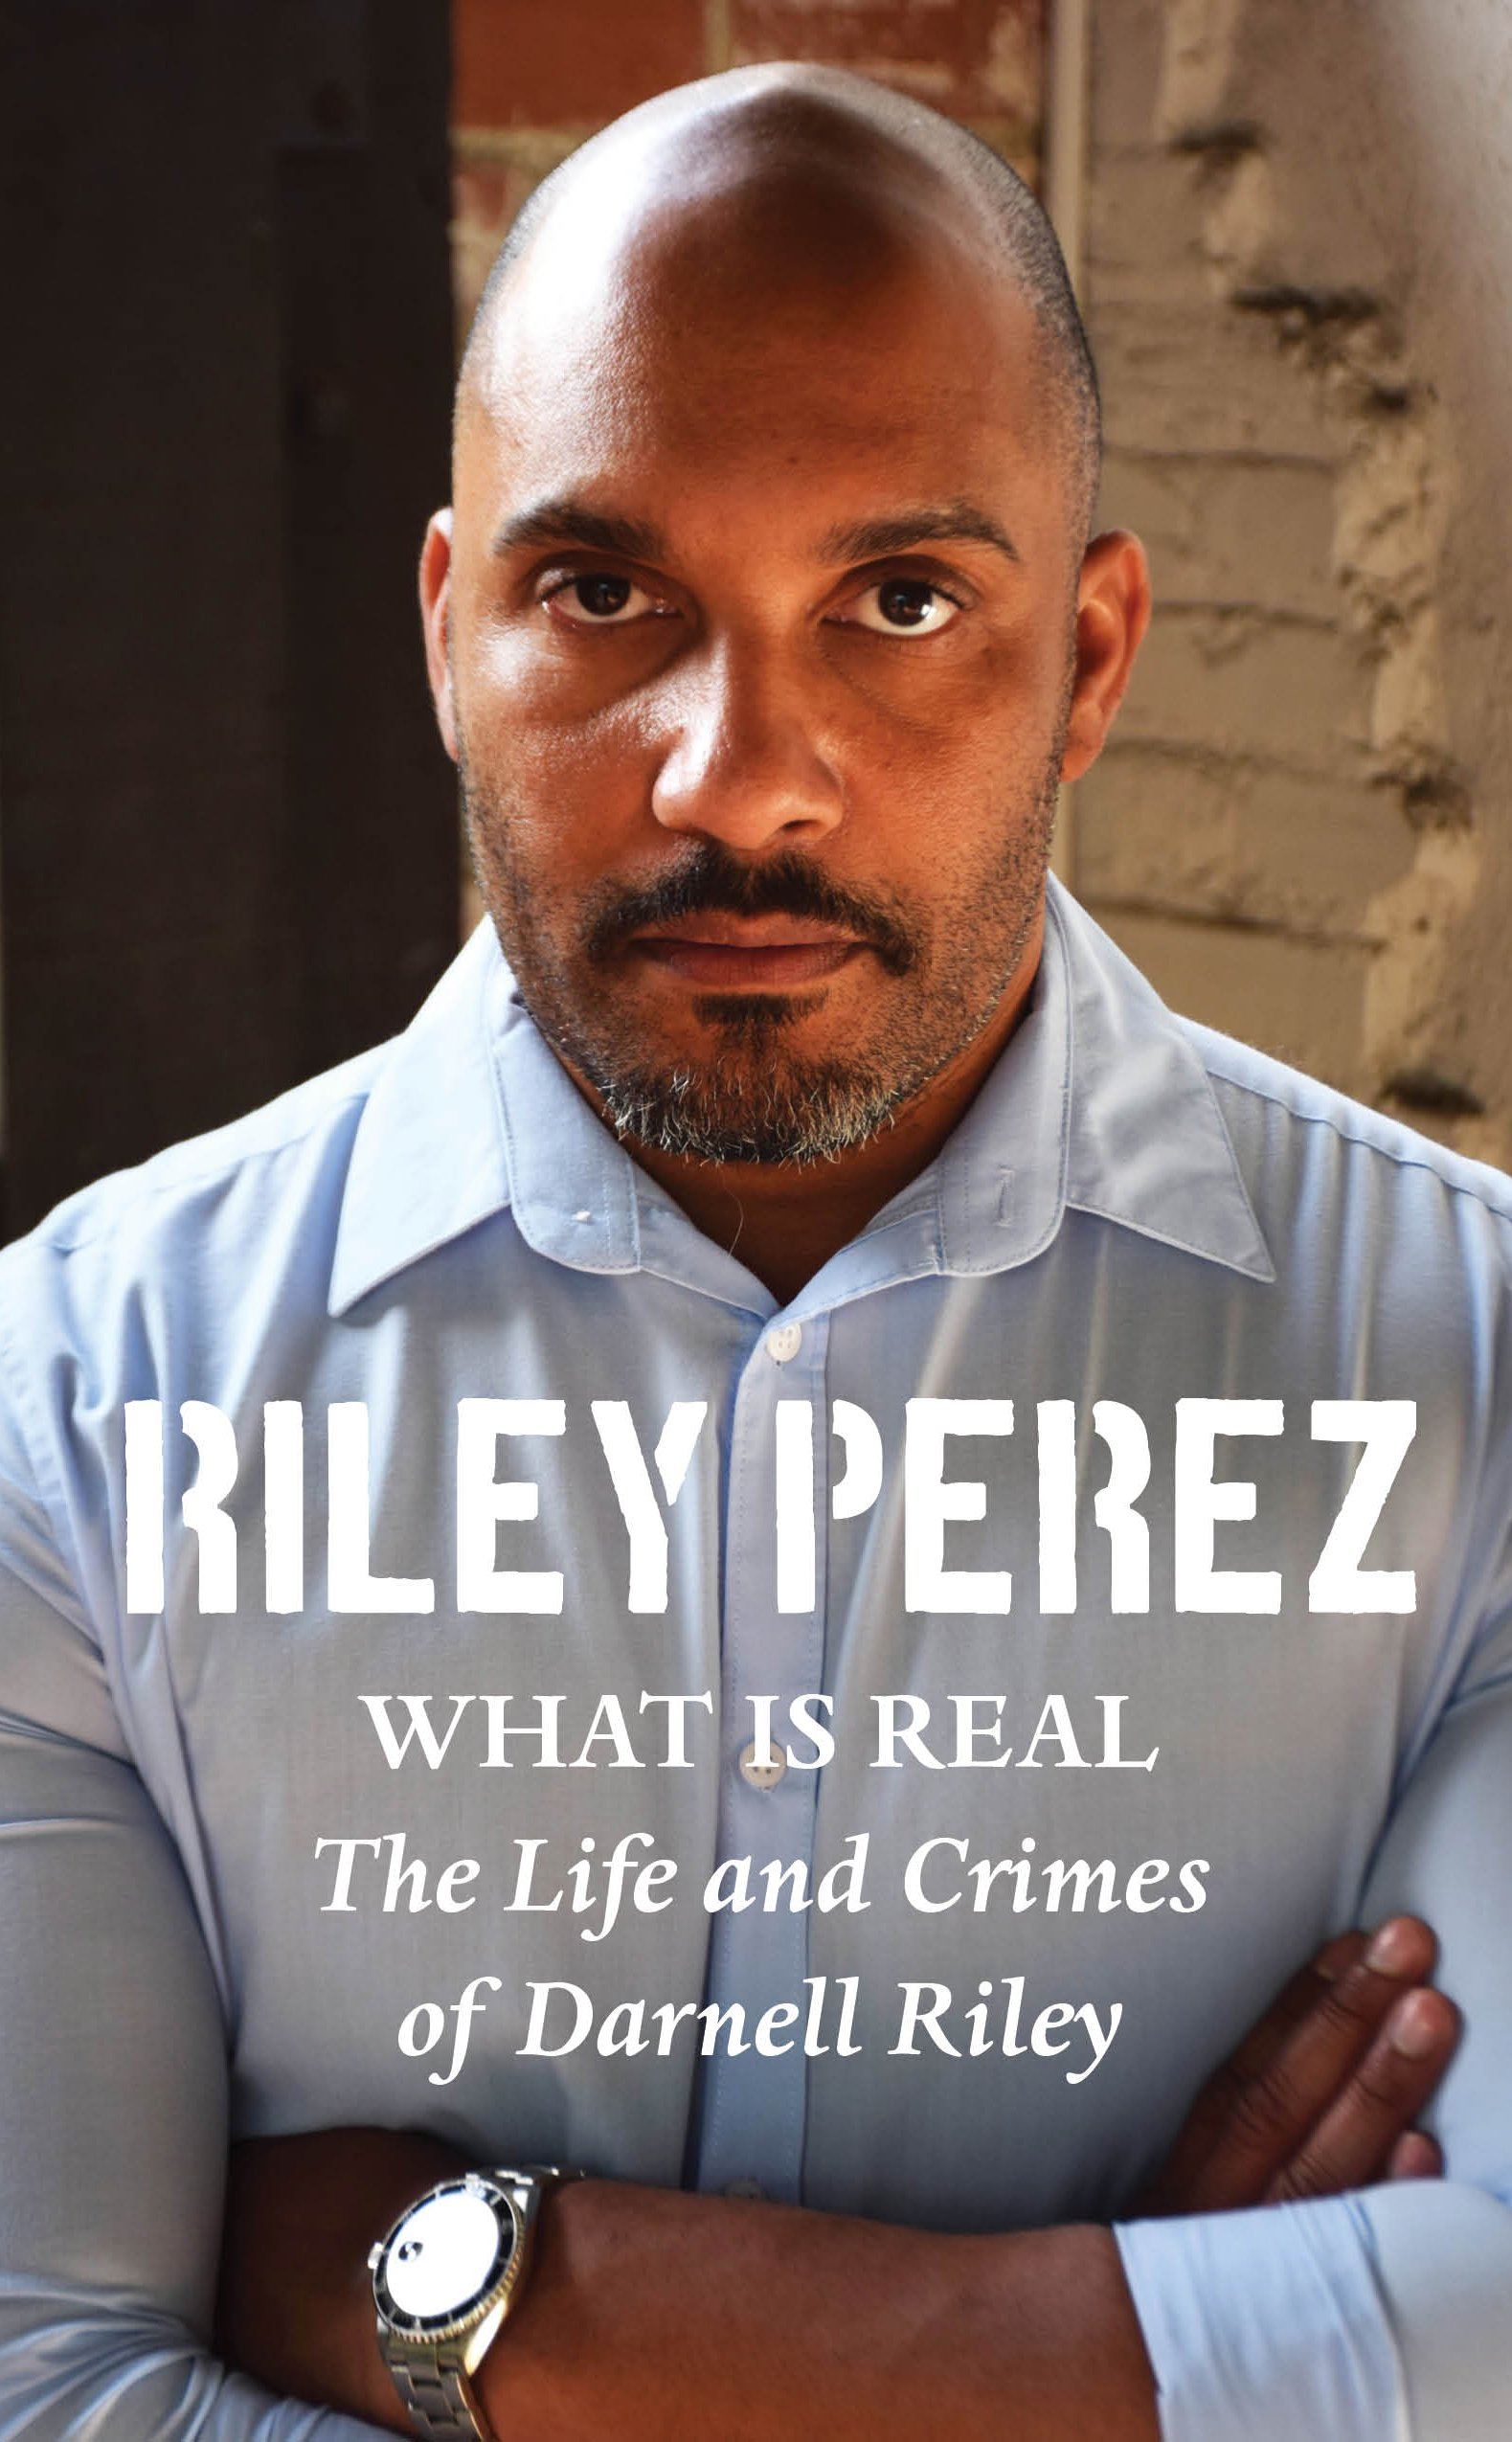 Joe Francis Kidnapper Riley Perez Recalls Heavy D Friendship